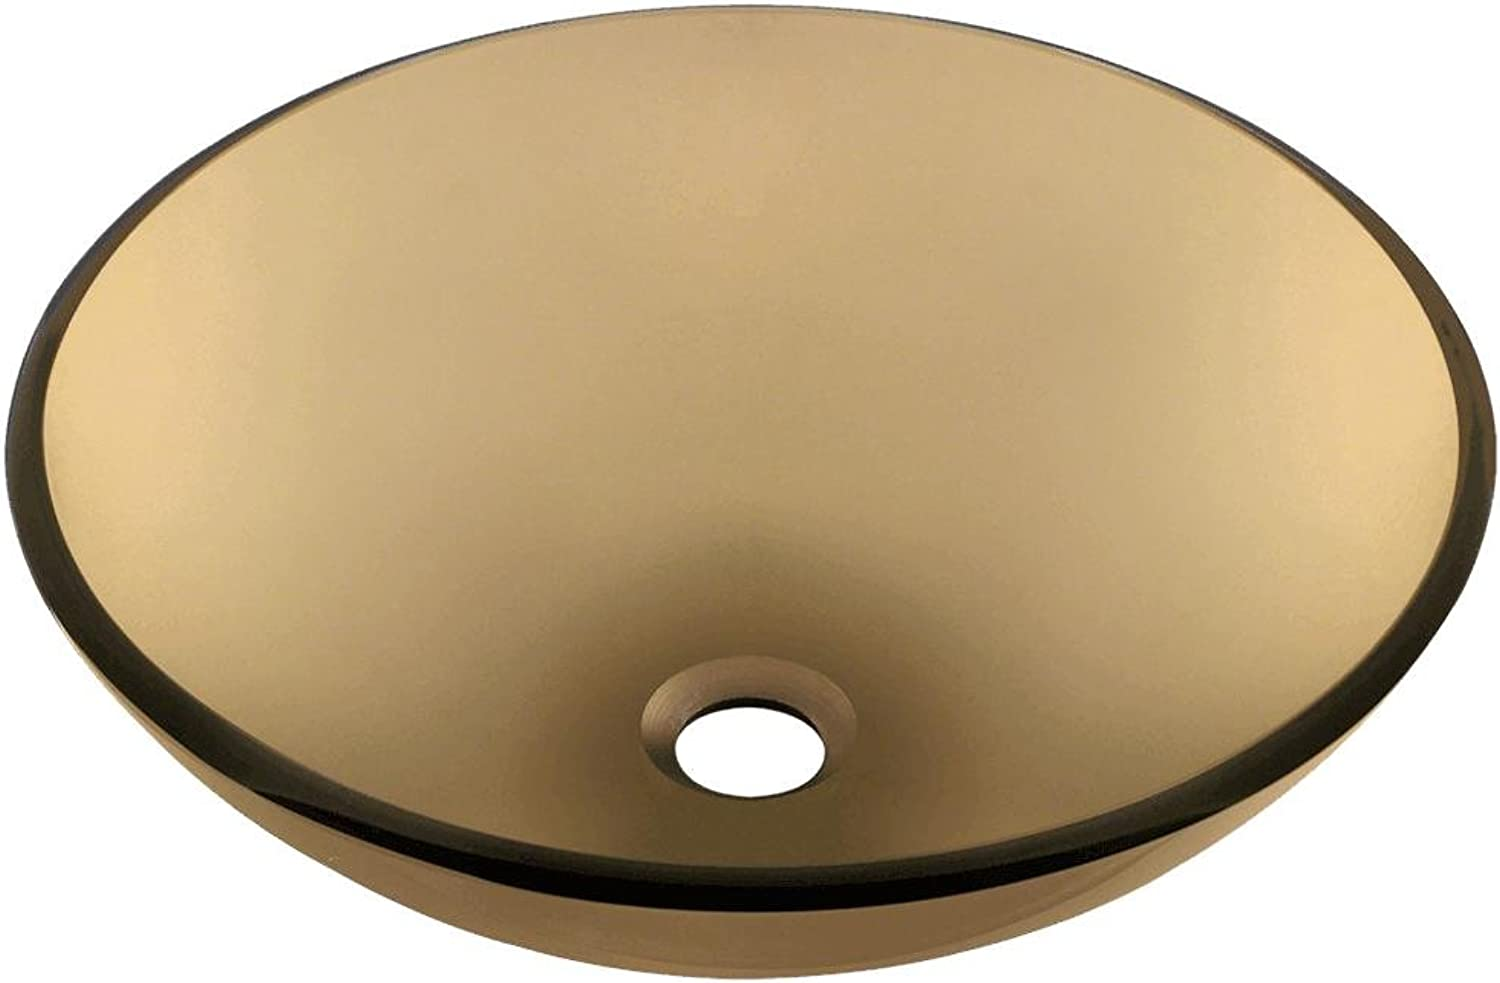 MR Direct 601 Taupe Coloured Glass Vessel Sink by MR Direct